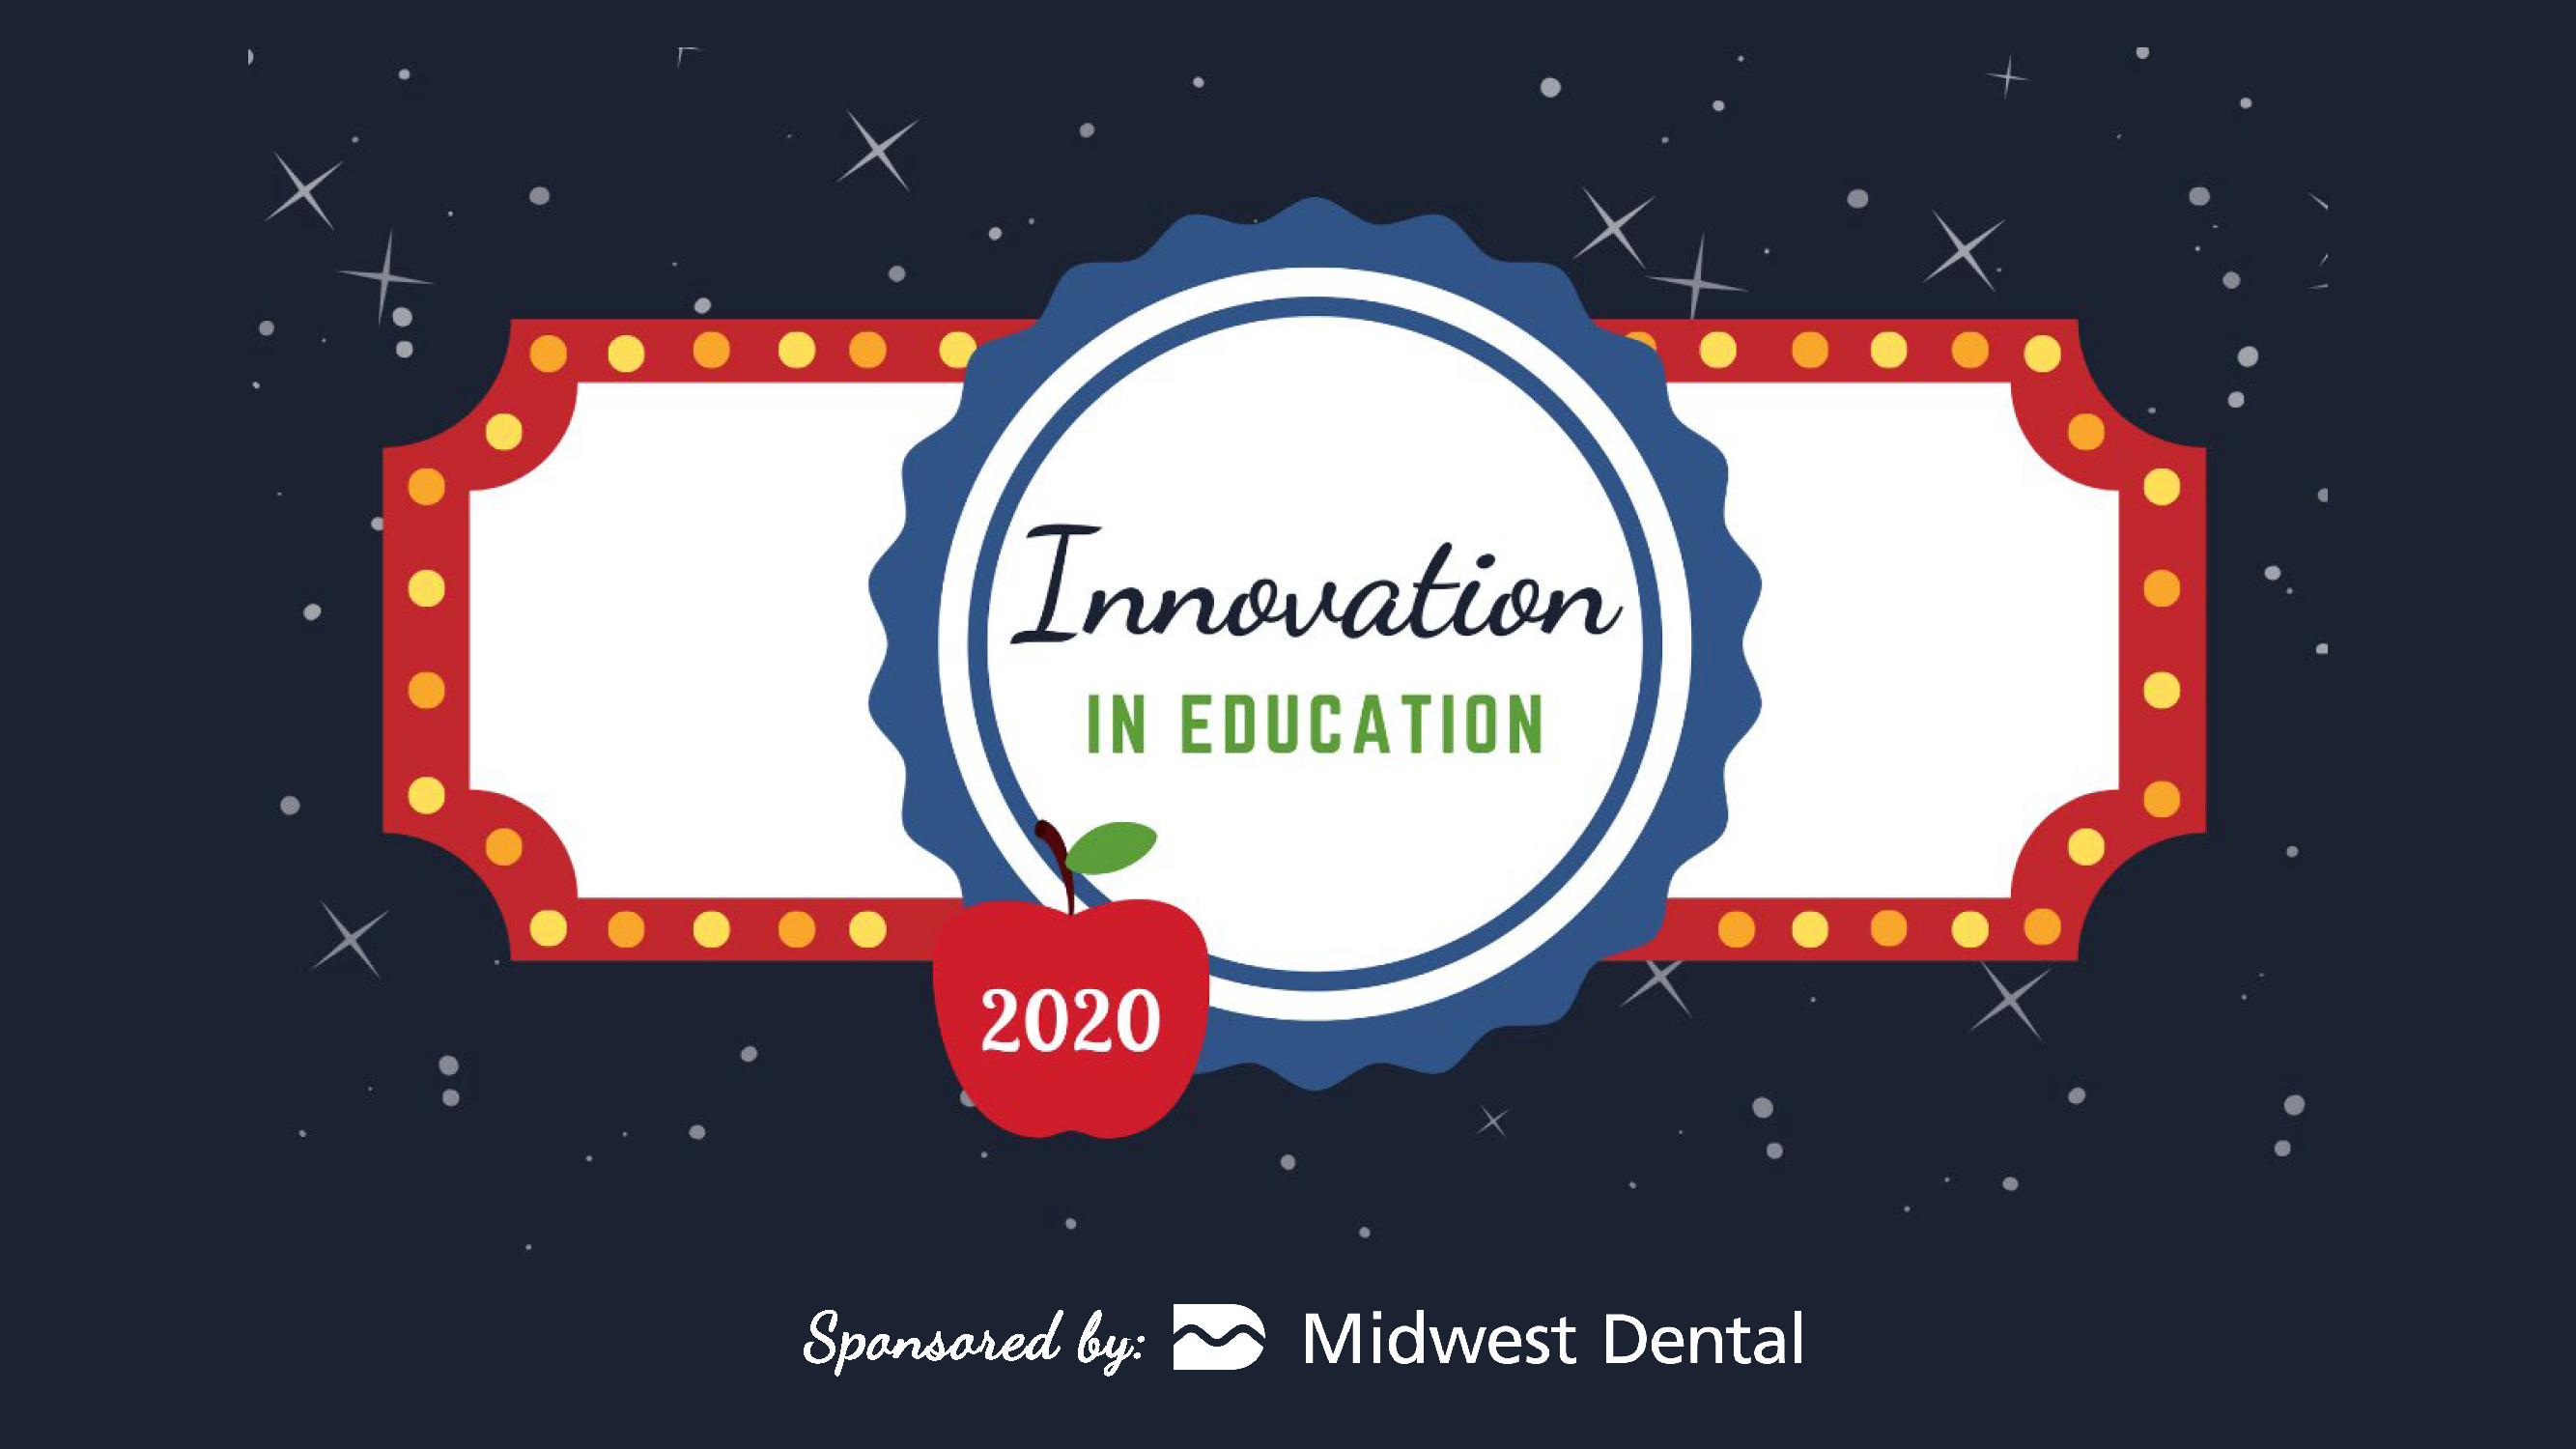 2020 Innovation in Education Sponsored by Midwest Dental